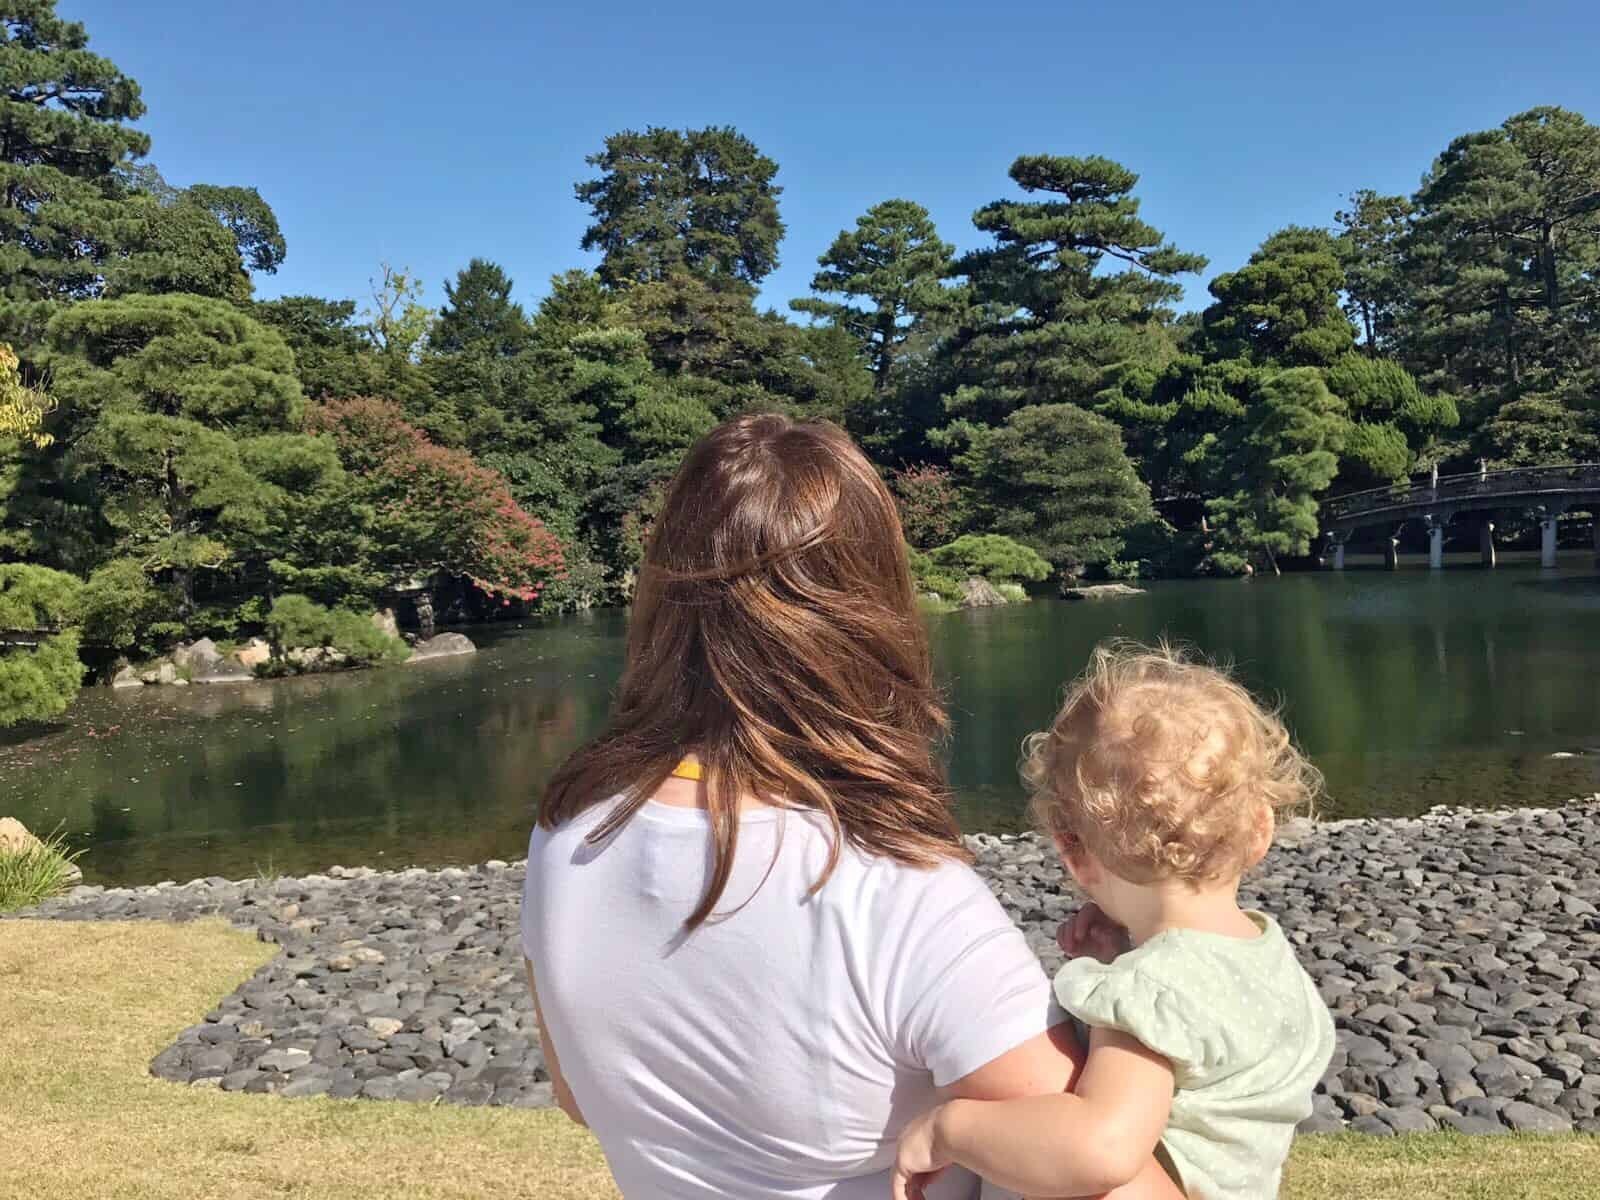 The Imperial Palace should be on your kyoto itinerary with kids